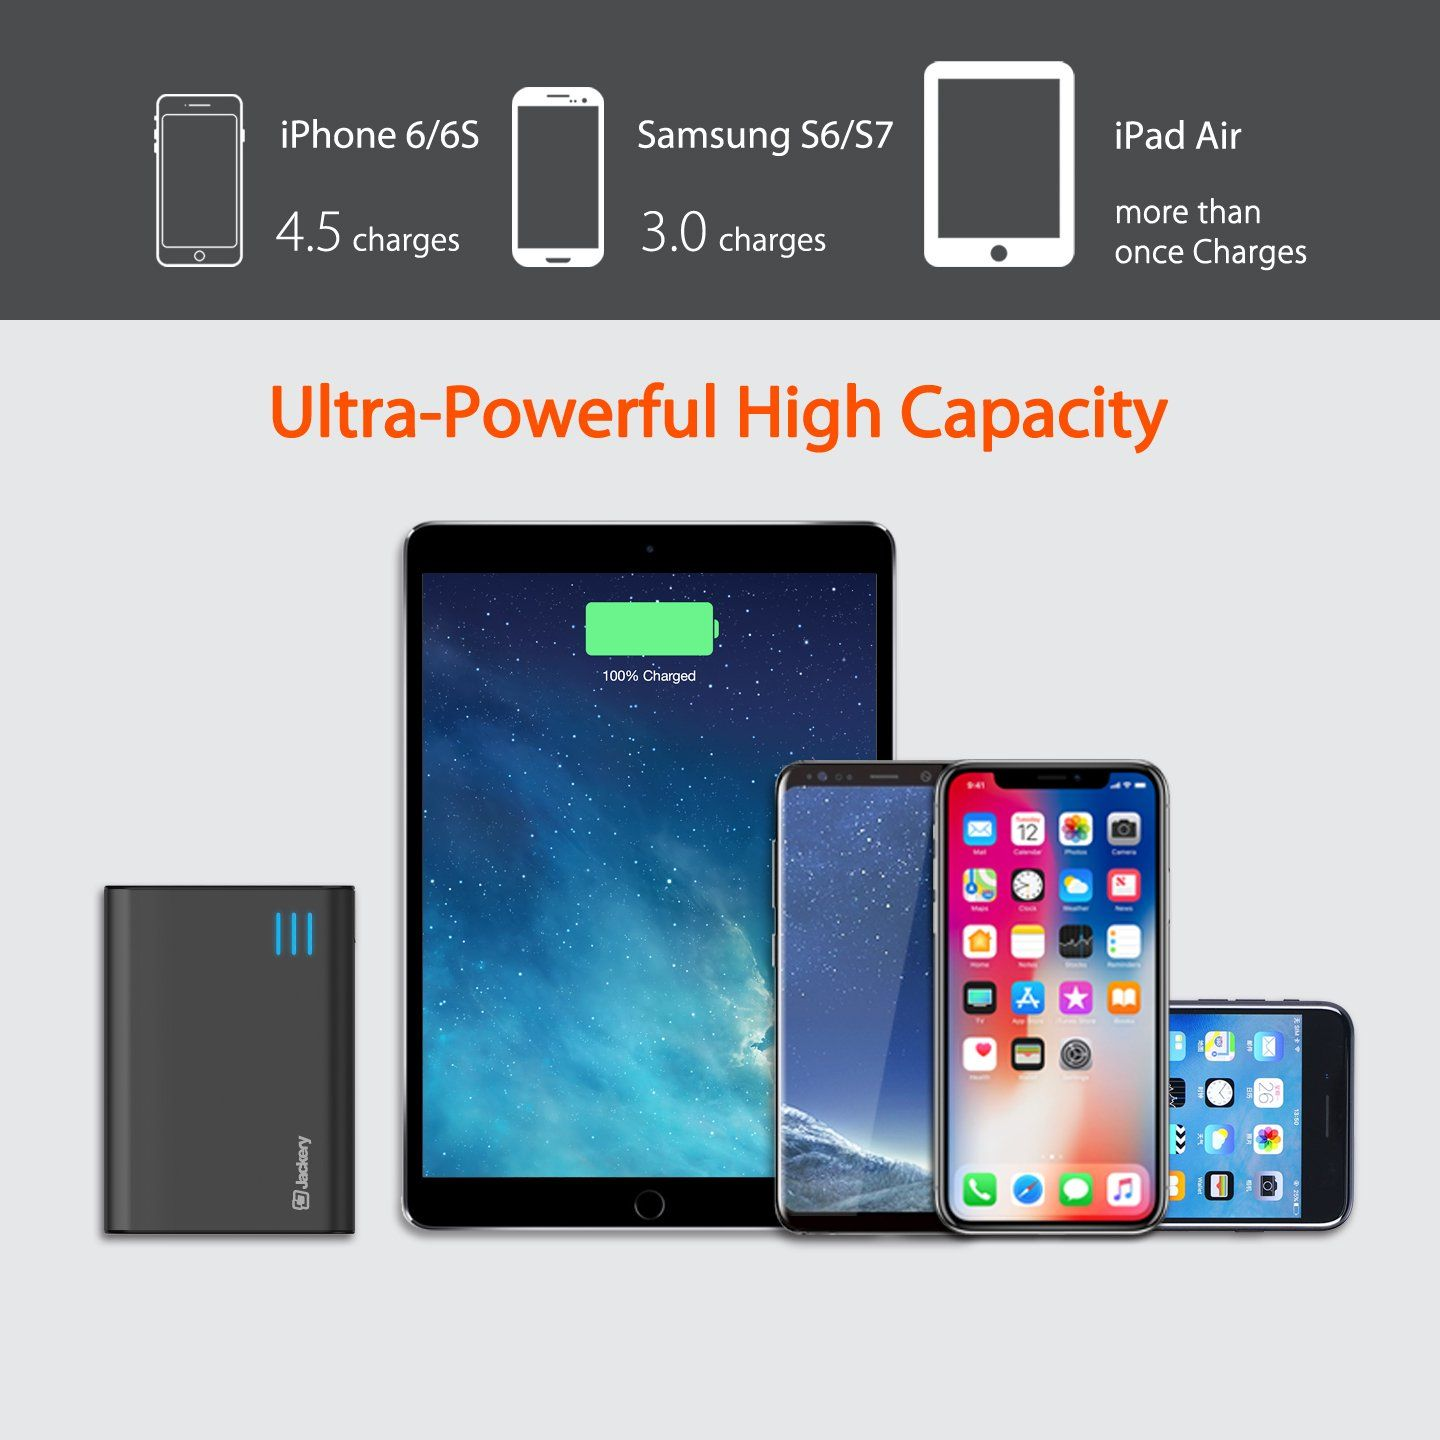 Portable External Charger Jackery Giant 12000mah Dual Usb Output Battery Pack Travel Backup Power Bank With Emergency Led Flashlight Powerbank Iphone Jackery